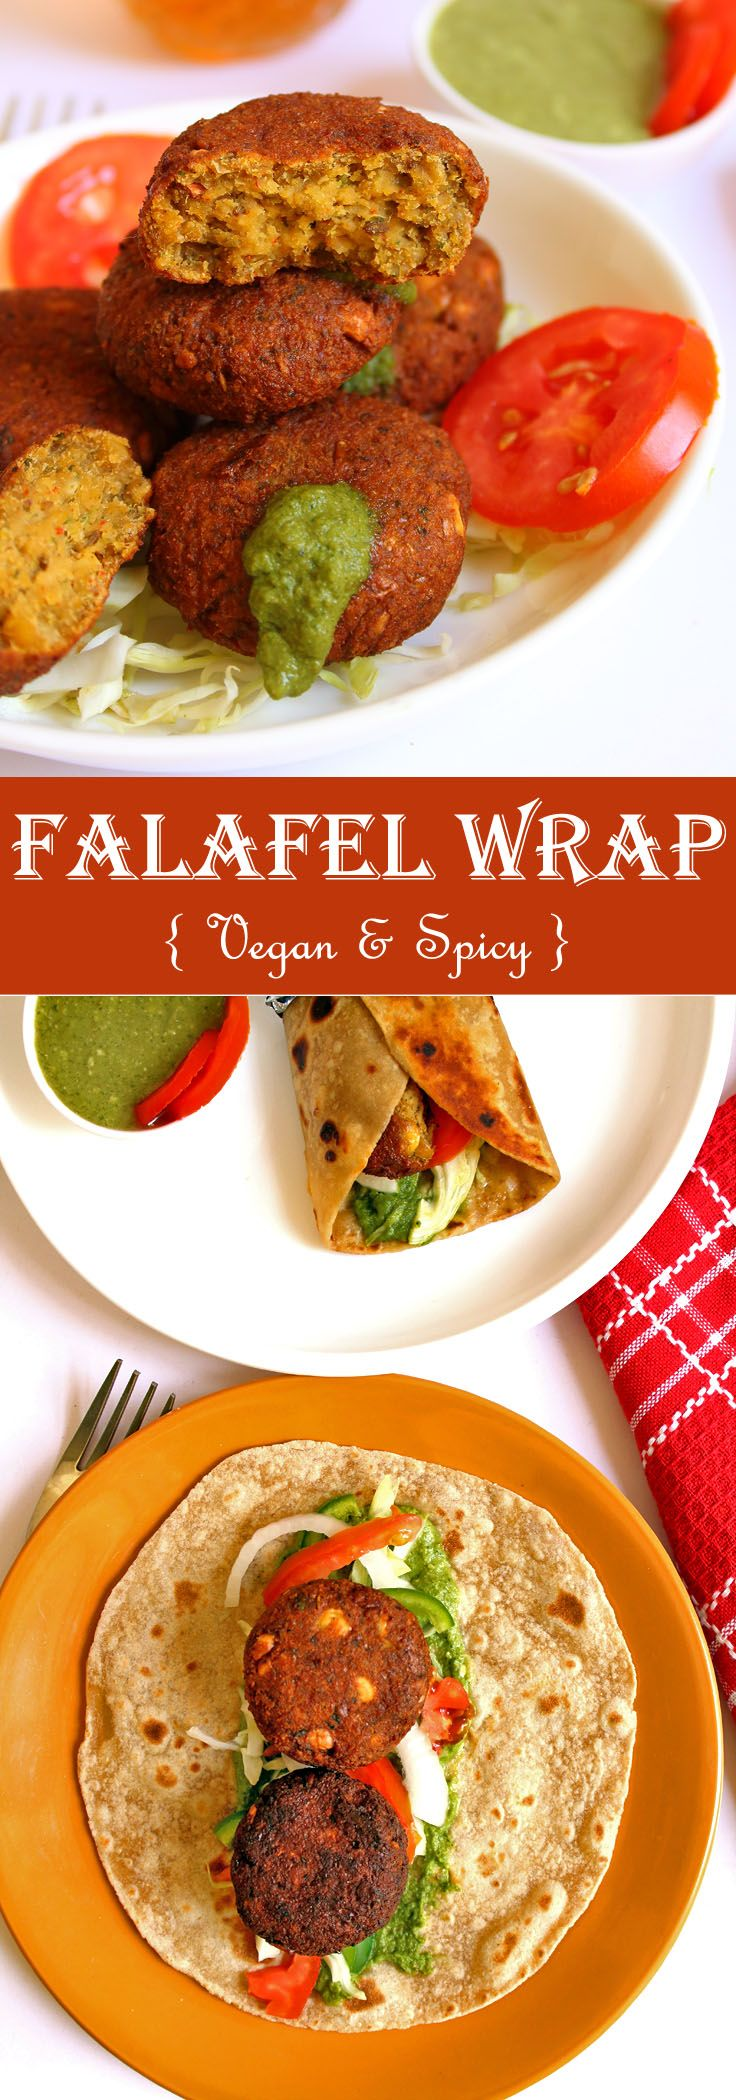 Blue apron falafel - This Spicy Vegan Falafel Wrap Is An Indian Version Of Very Famous Middle Eastern Street Food